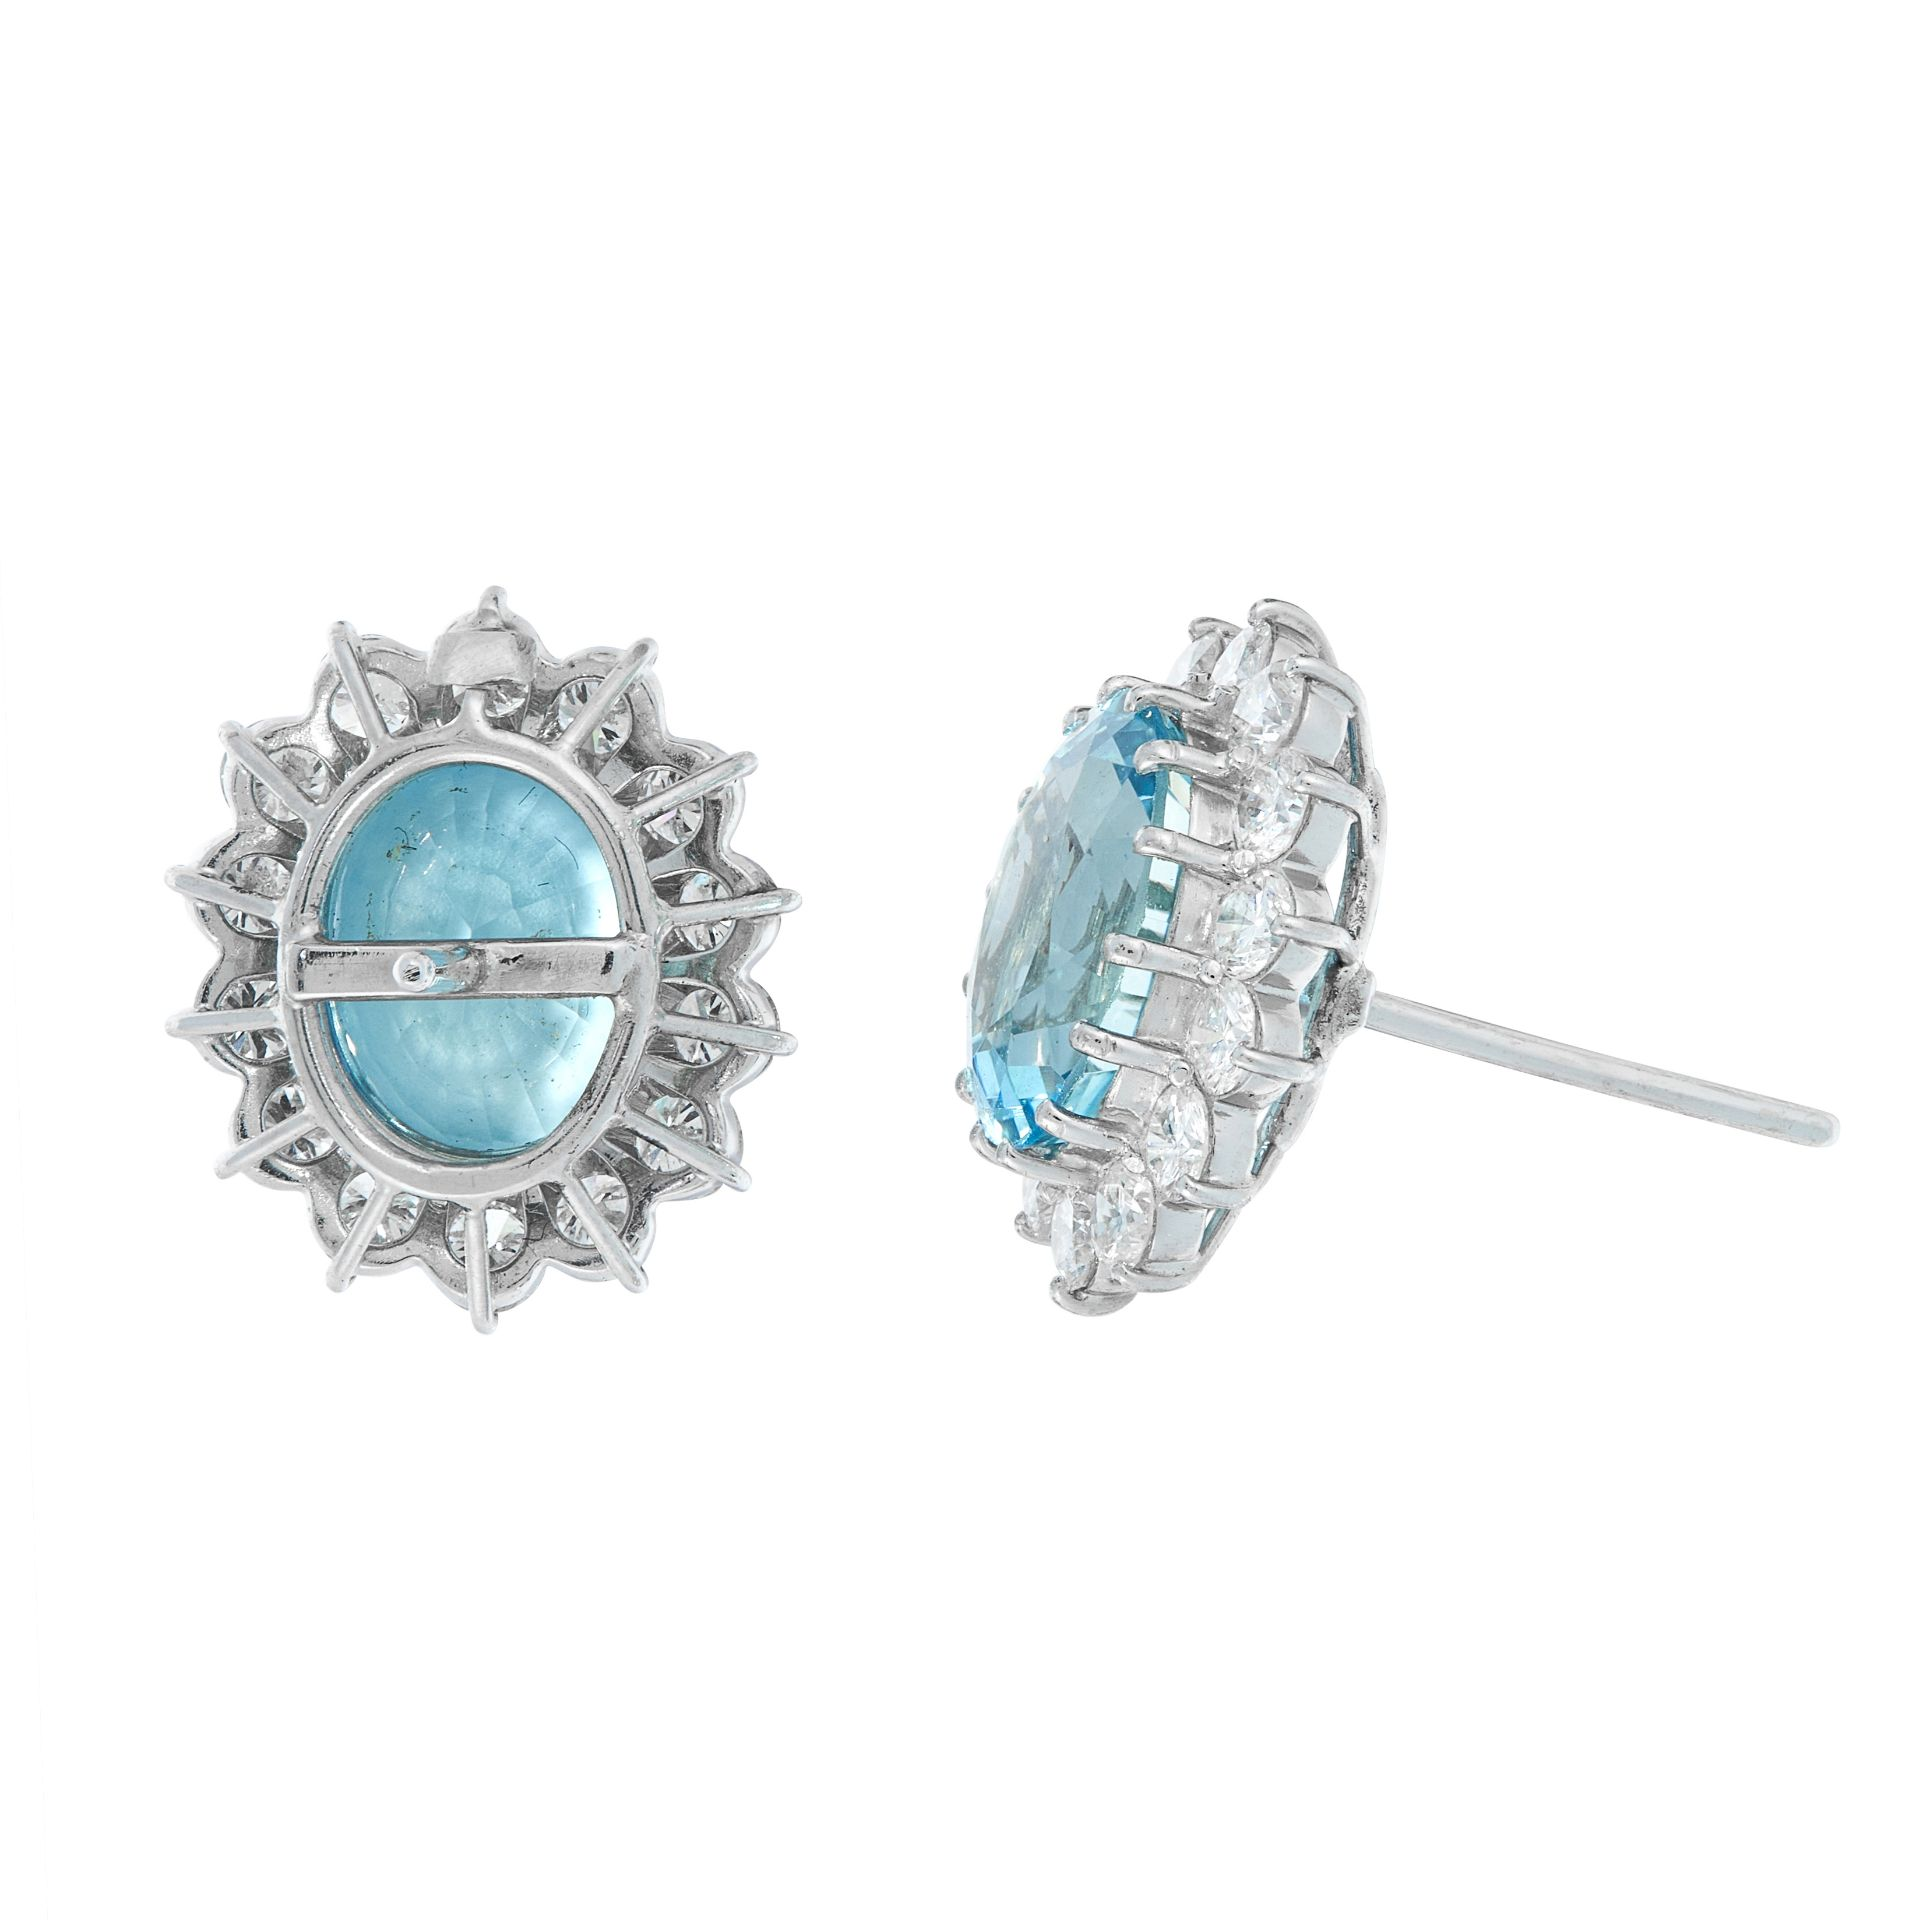 A PAIR OF AQUAMARINE AND DIAMOND STUD EARRINGS each set with an oval cut aquamarine of 2.94 carats - Image 2 of 2